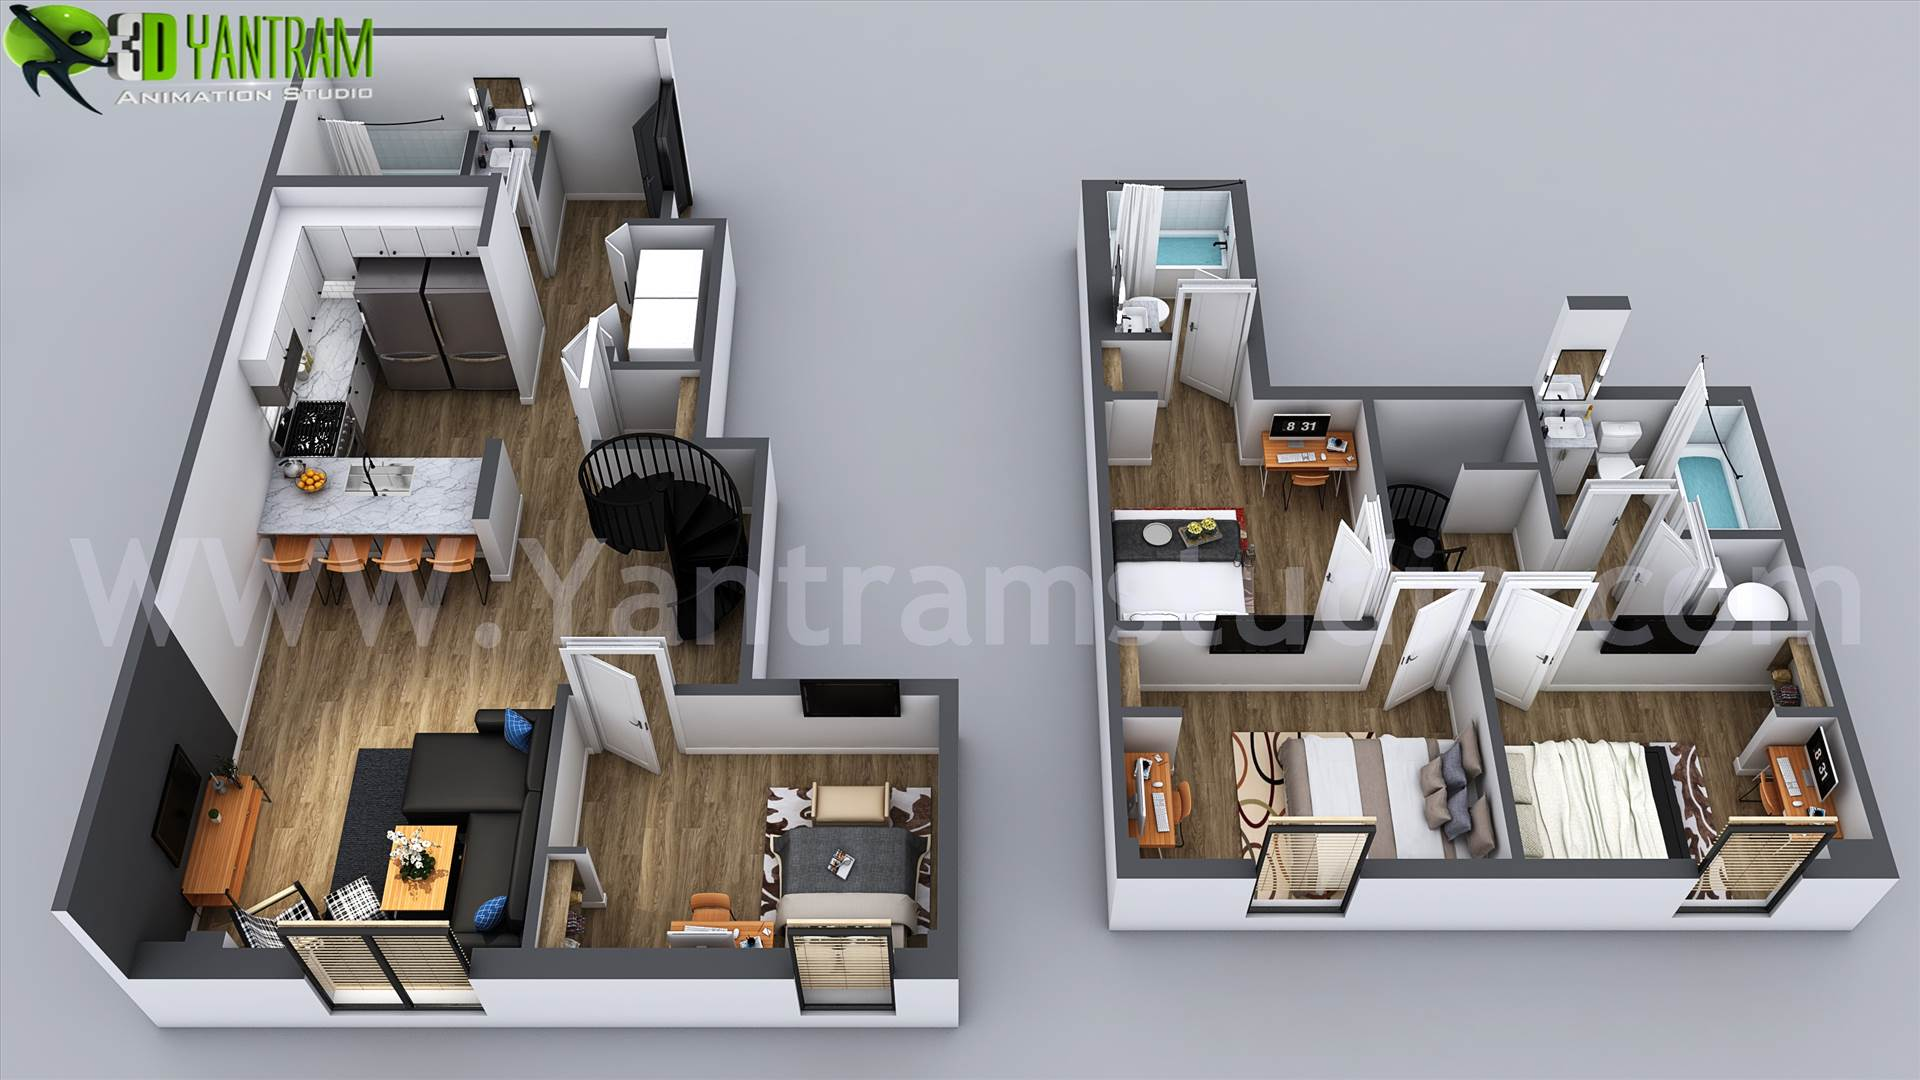 3D Home Floor Plan Designs By Yantram floor plan designer - Washington, USA - Floor plans are usually drawn to show exact property area and room types. some are come along with appliances and furniture for the better idea about placement and space utilization.